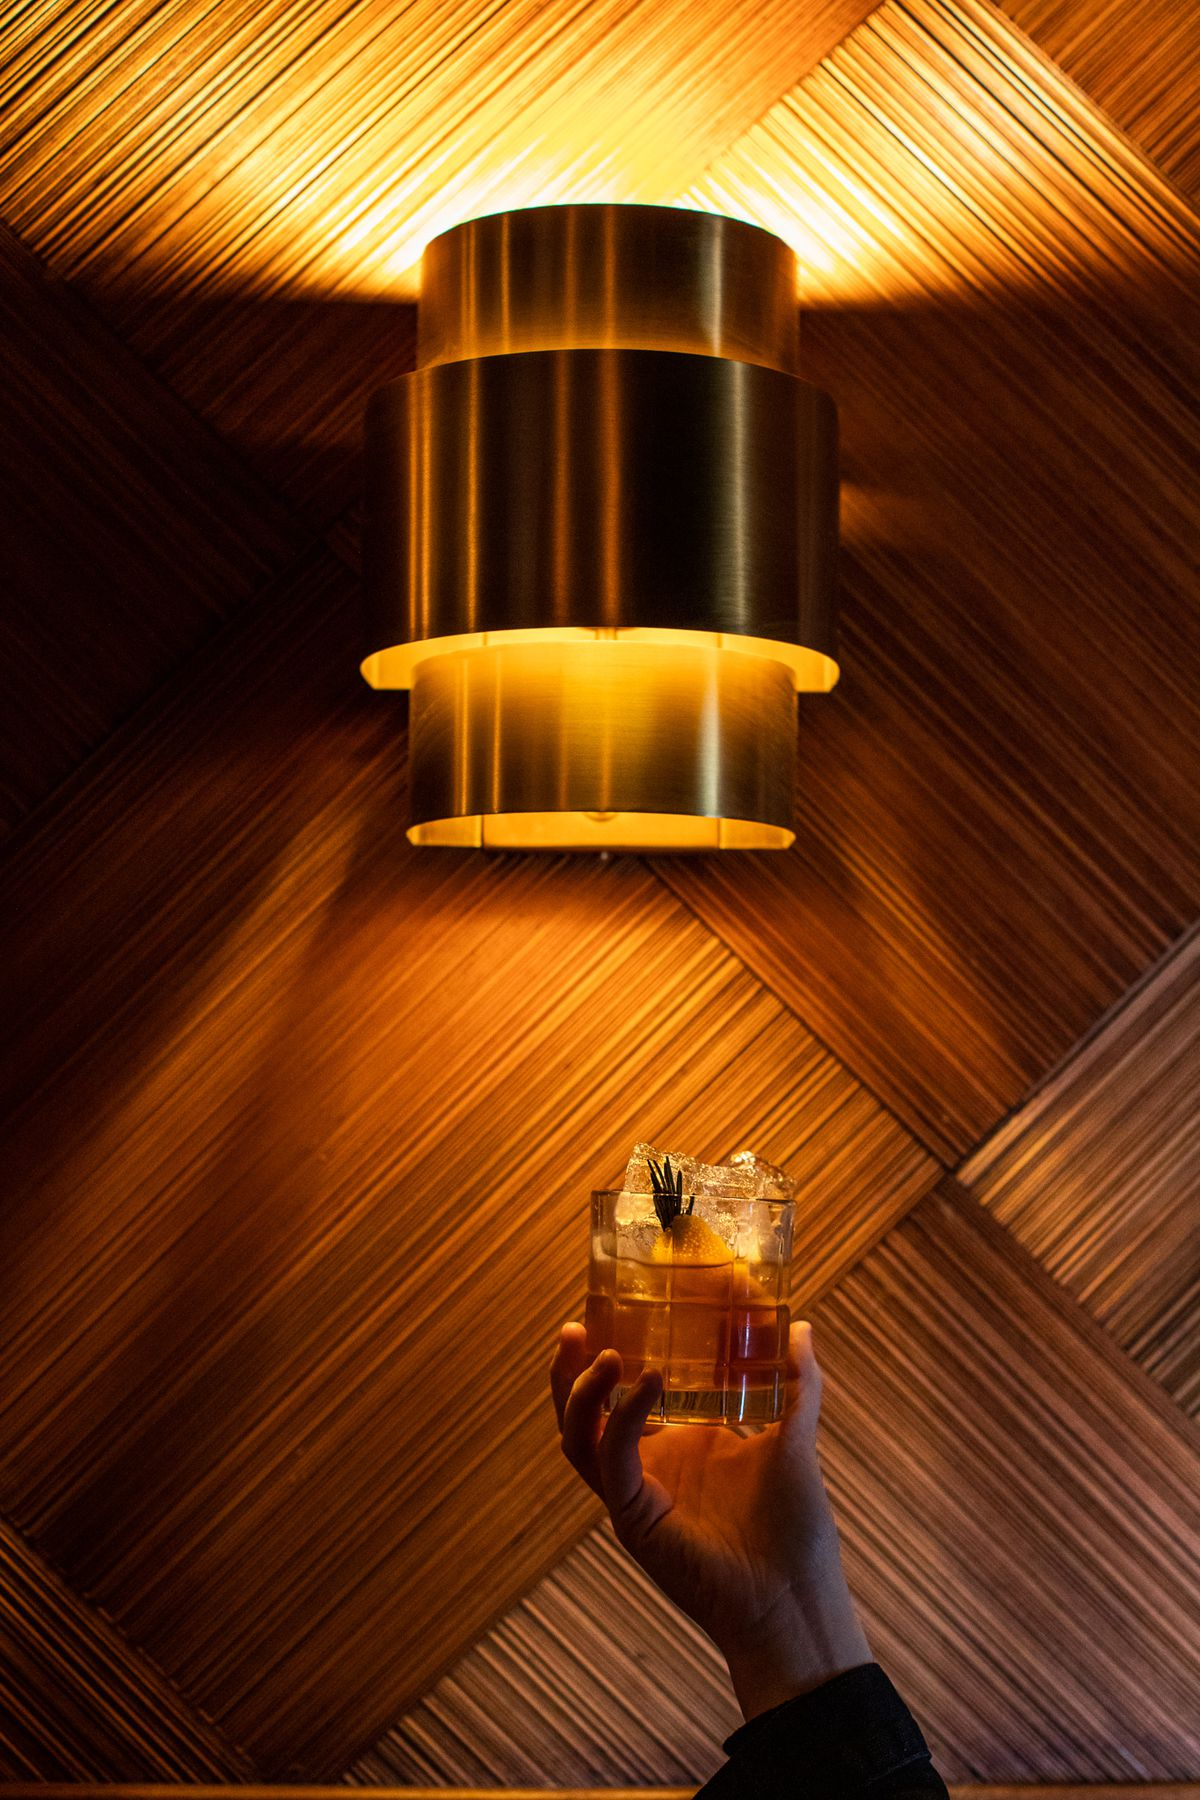 A hand holds up a tumbler of a brown cocktail with pieces of ice below an art deco-style sconce. The cocktail is garnished with orange peel and rosemary.